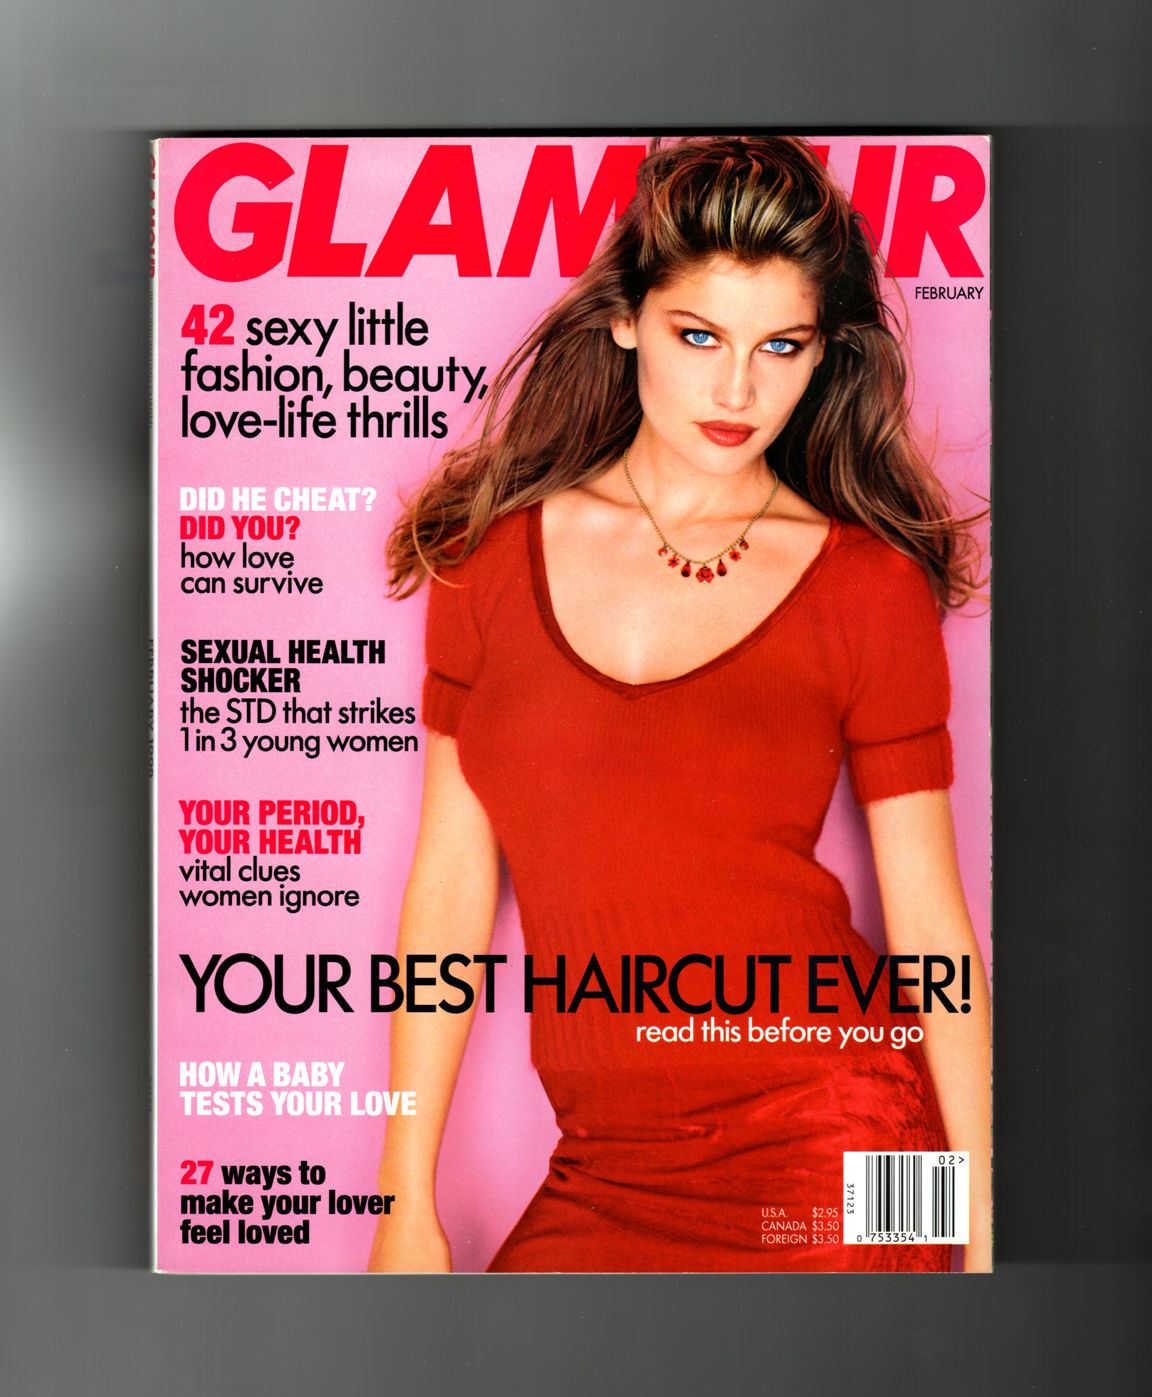 Glamour Magazine February 1998 Laetitia Casta Cover Bridget Fonda 42 Thrills Did He Cheat